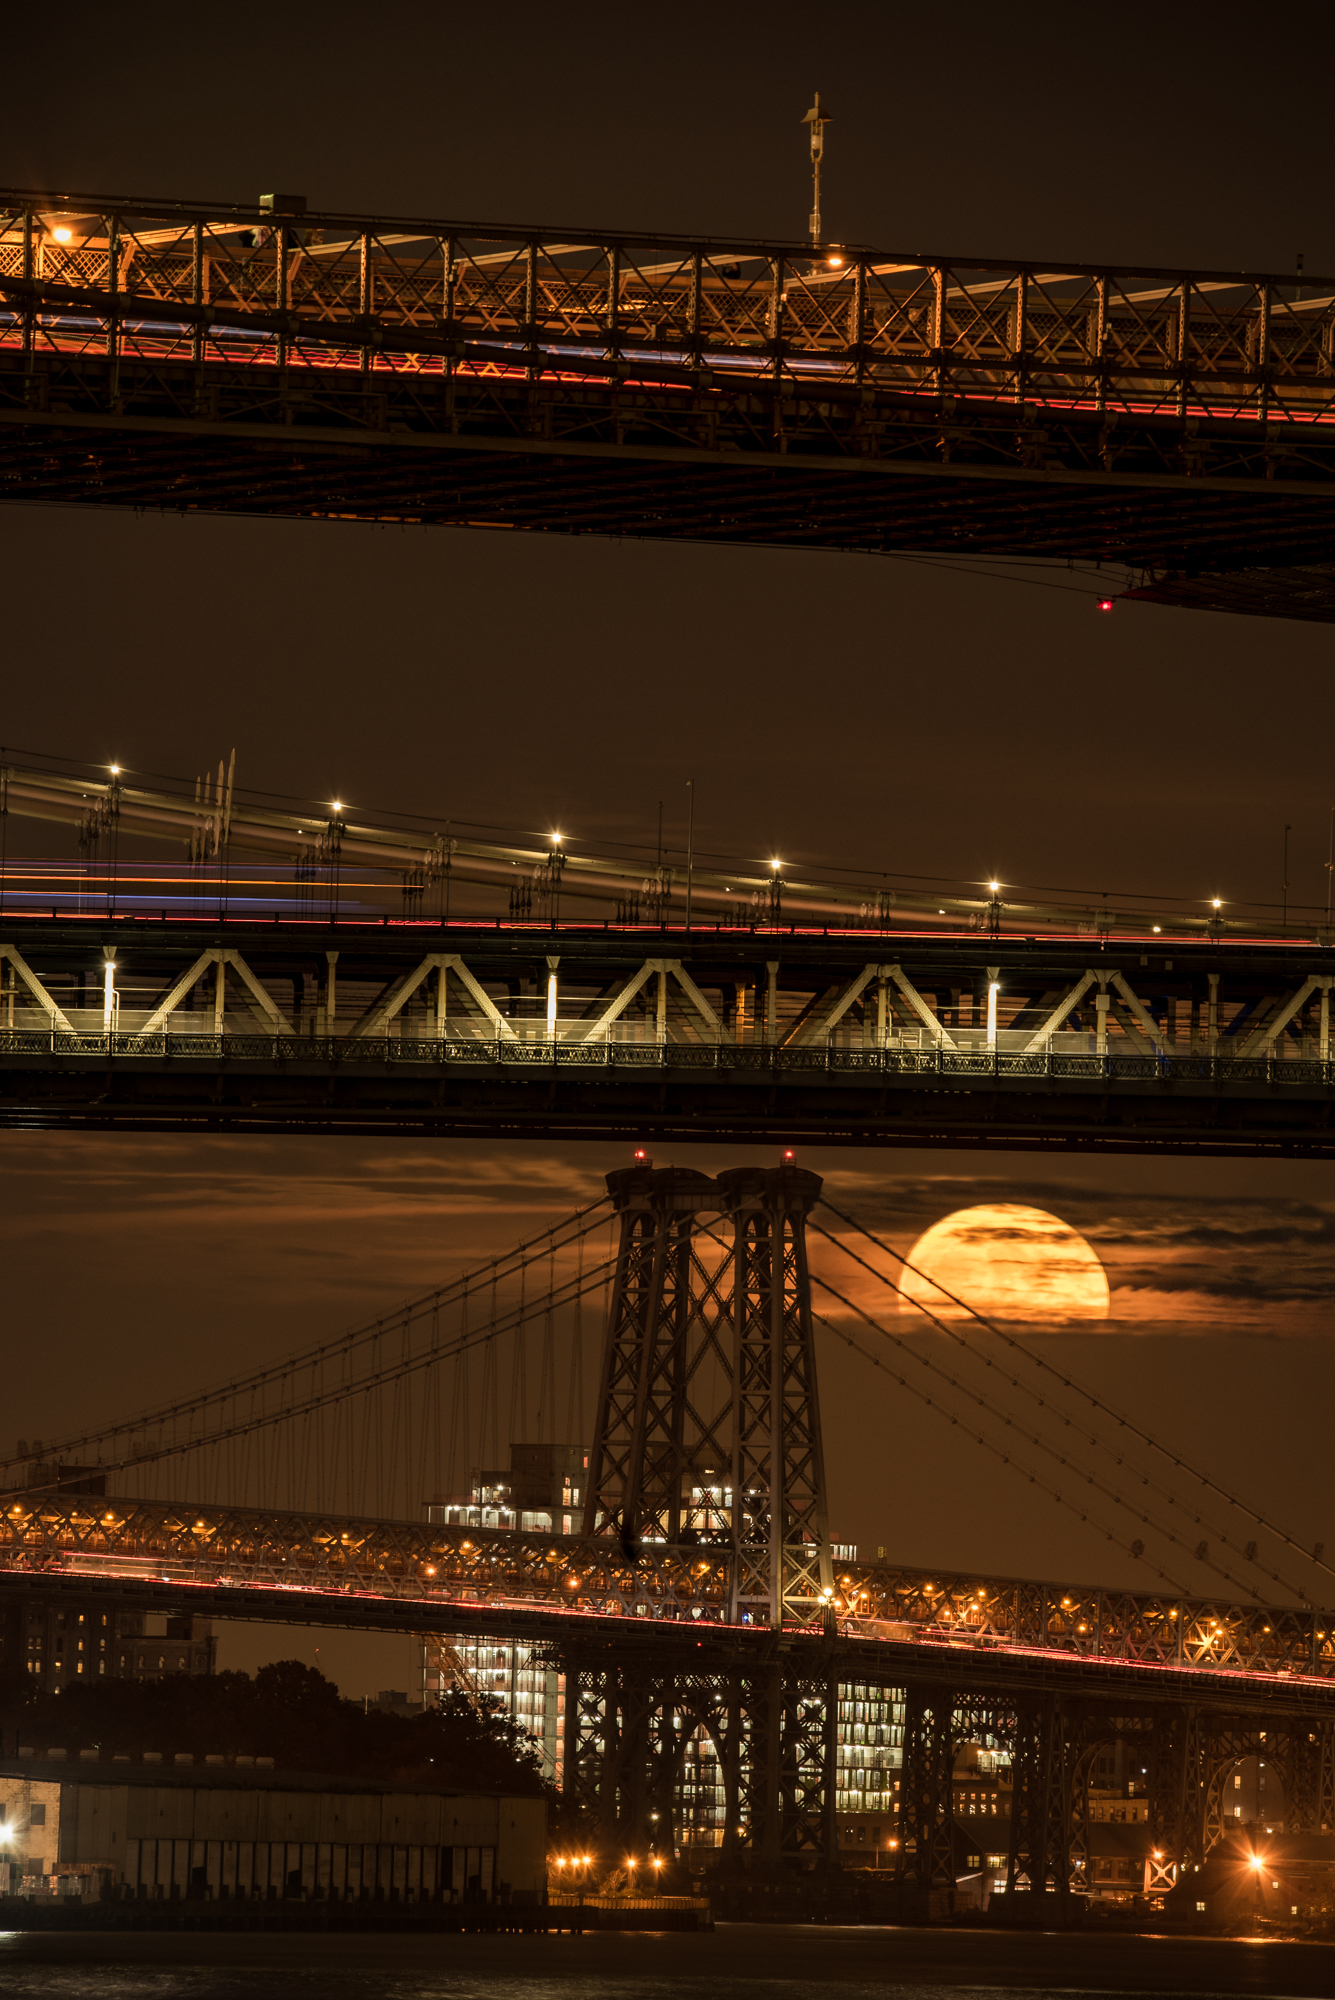 I needed a 3-minute window for the supermoon to shine through the clouds and bridges, a juxtaposition of time and place that required some serious planning with the PhotoPills app. Nikon D750 with a  Tamron 150-600mm f/5-6.3  lens set to 370mm. 1/2, f/11, ISO 400.